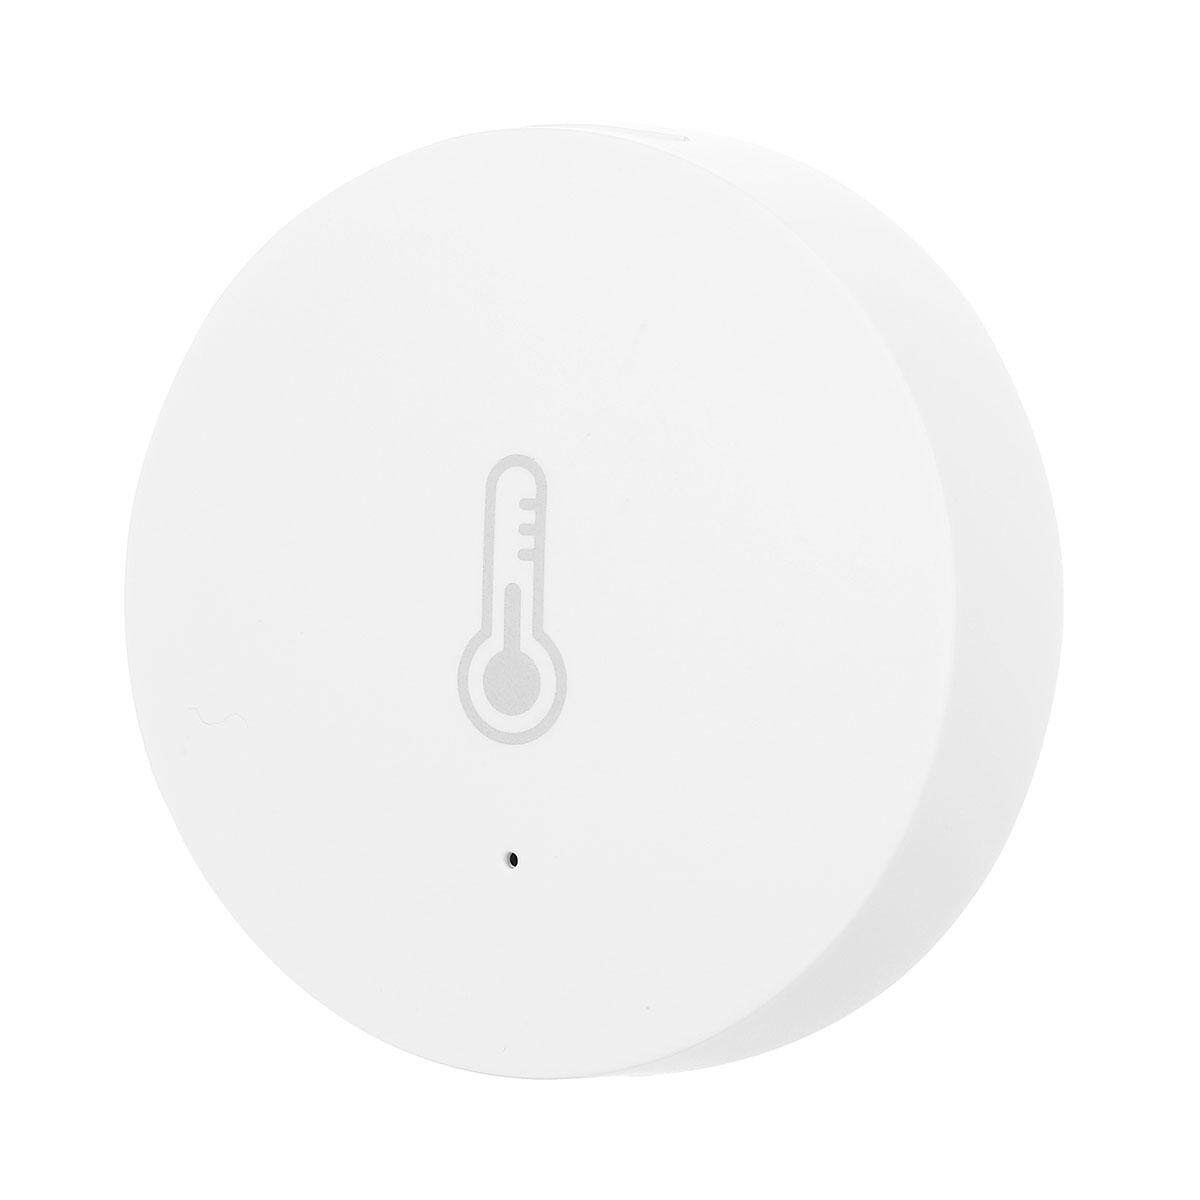 Aqara Temperature Humidity Sensor Smart Zigbee Smart Home App Control Home Device For Gateway Outlet Real-Time By Oasis Times.